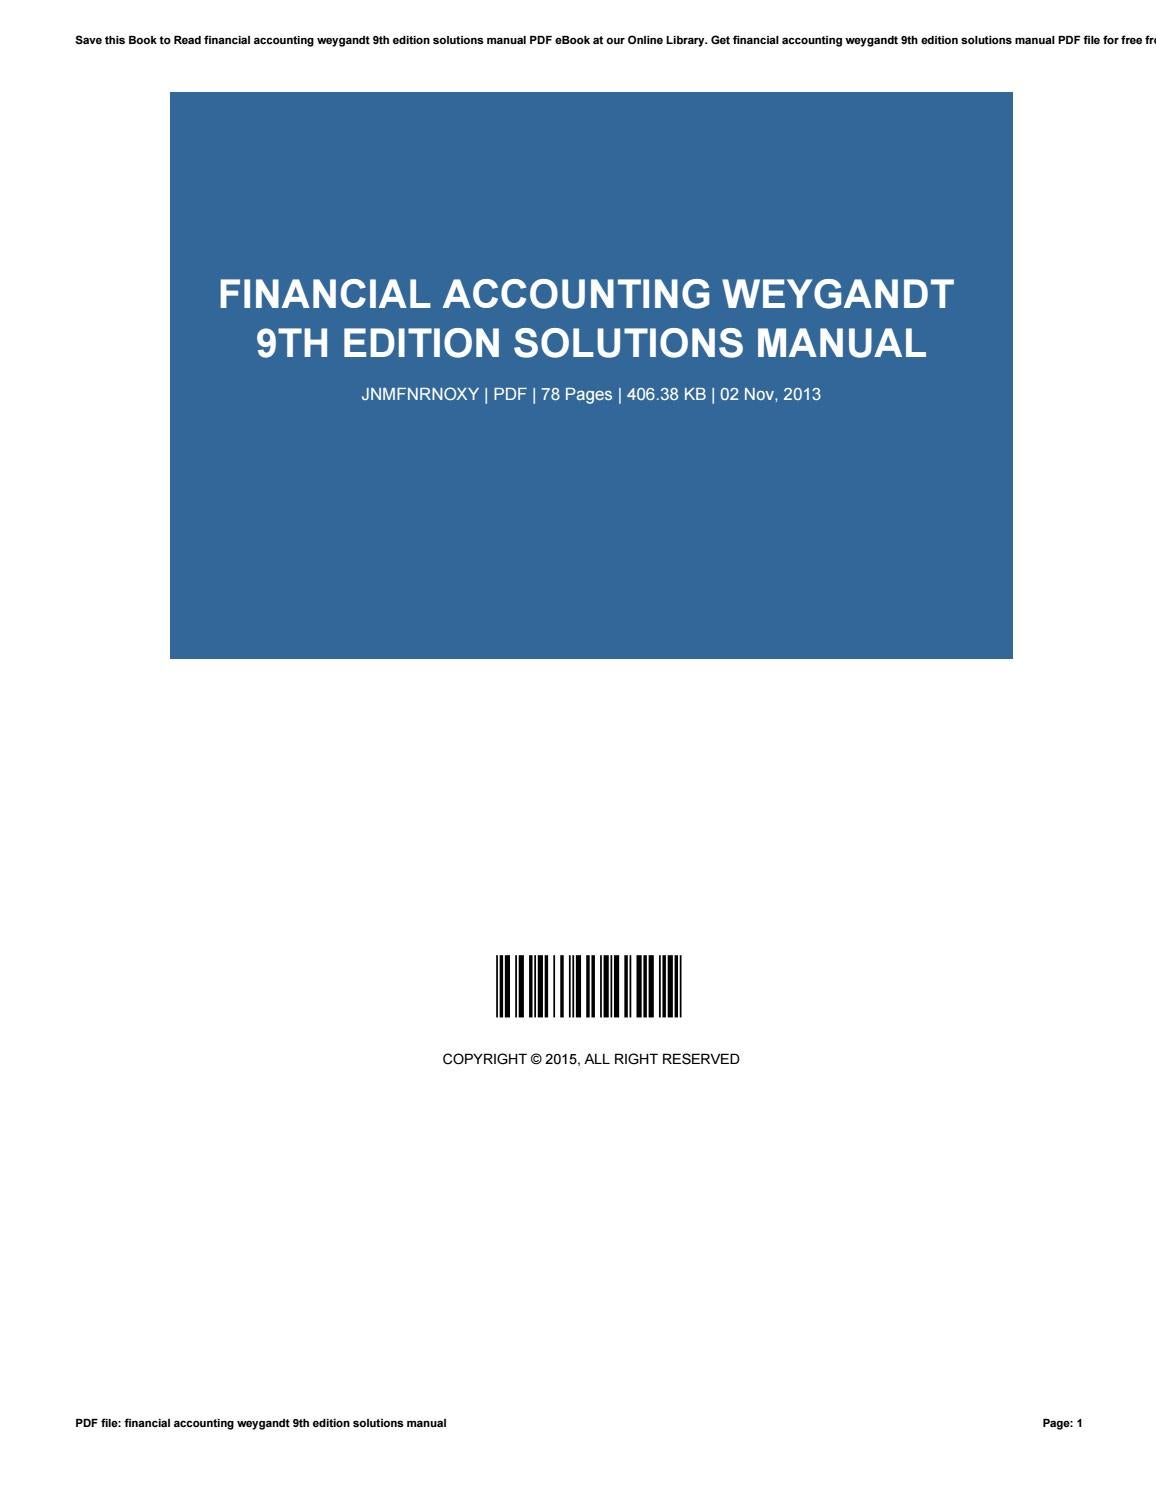 Financial Accounting Weygandt 9th Edition Solutions Manual By